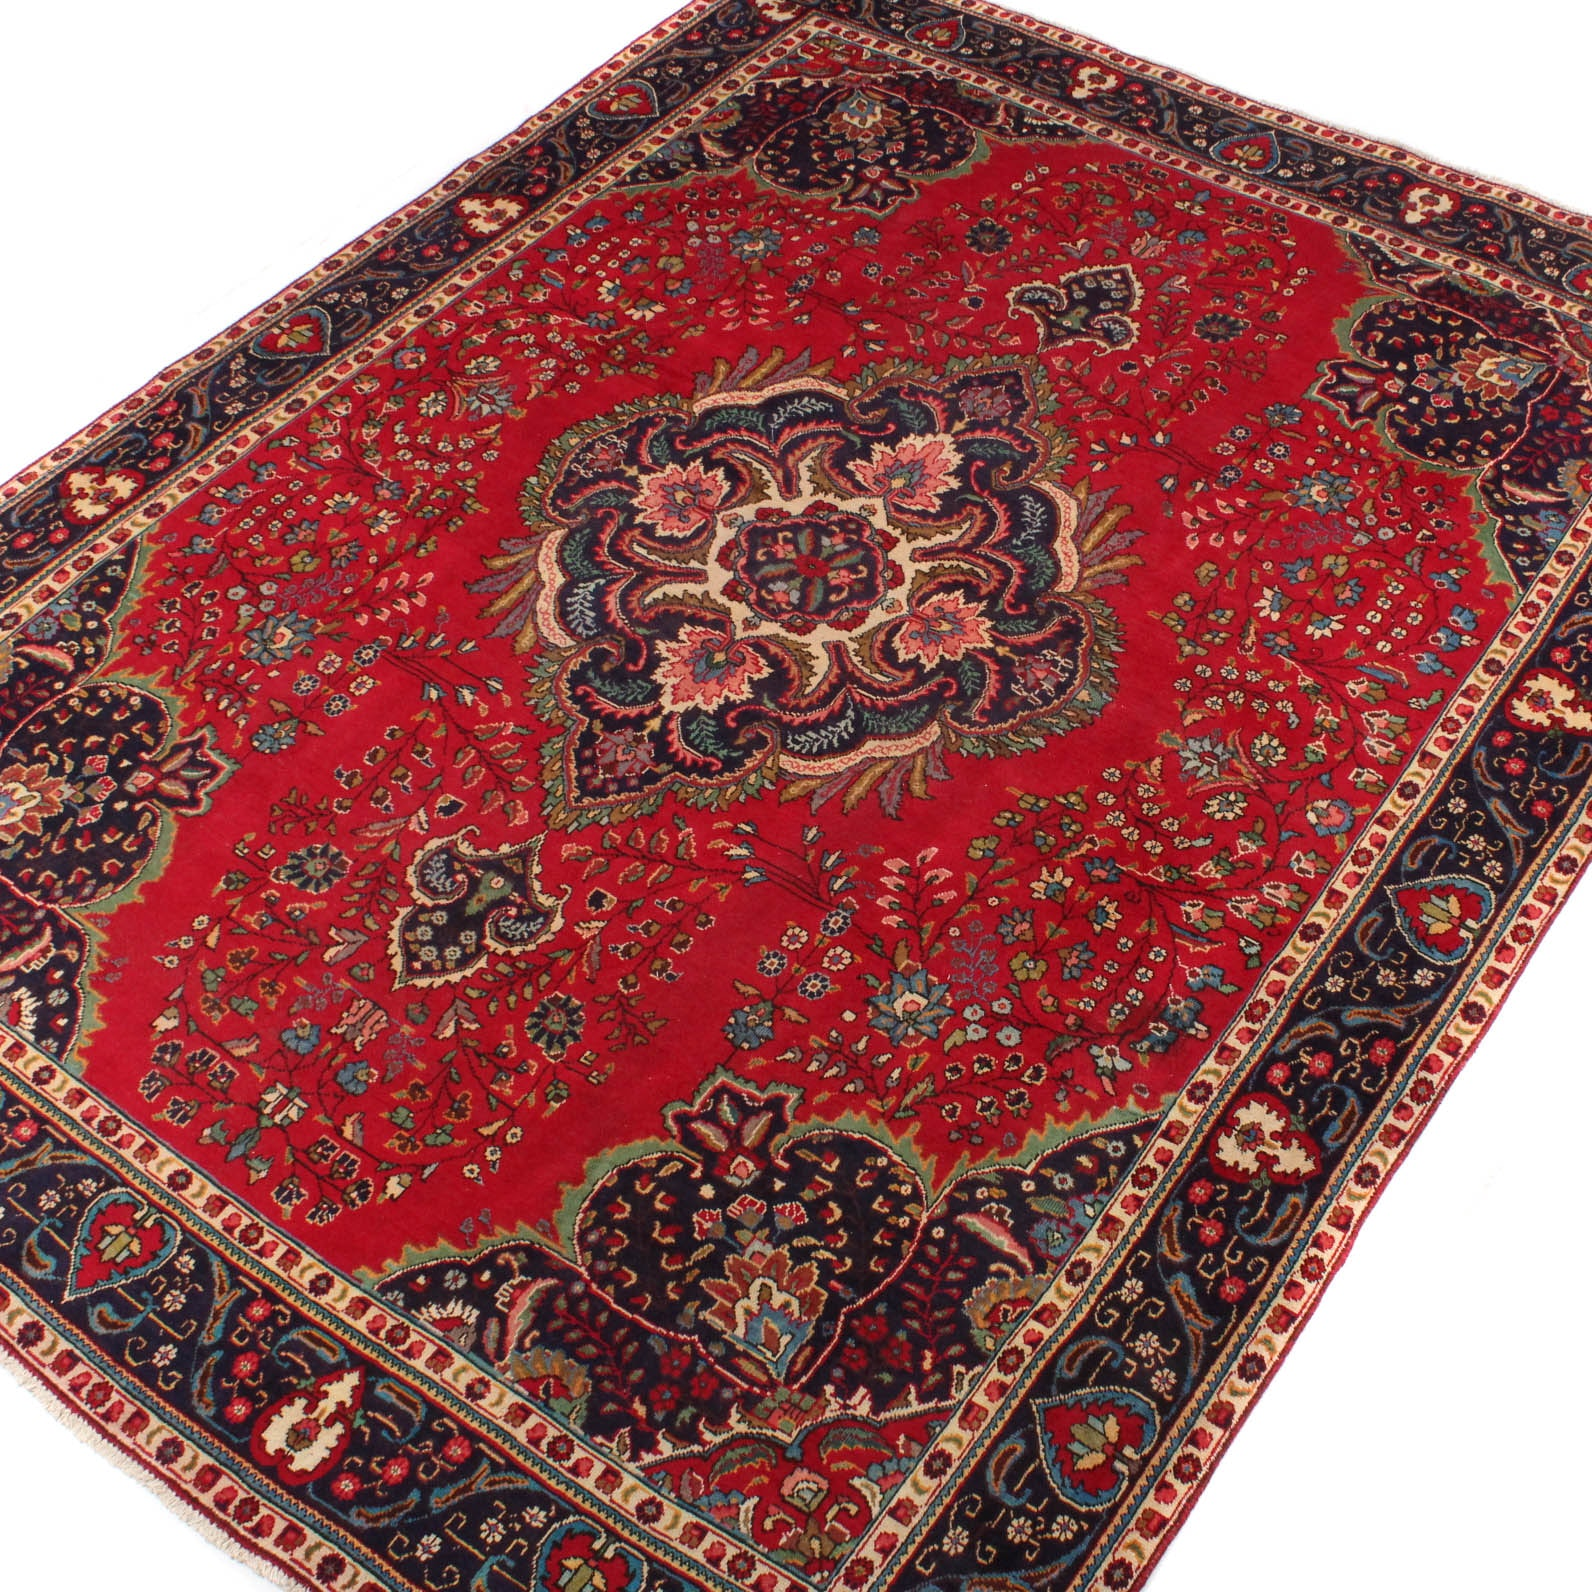 10' x 13' Vintage Hand-Knotted Persian Qum Room Size Rug